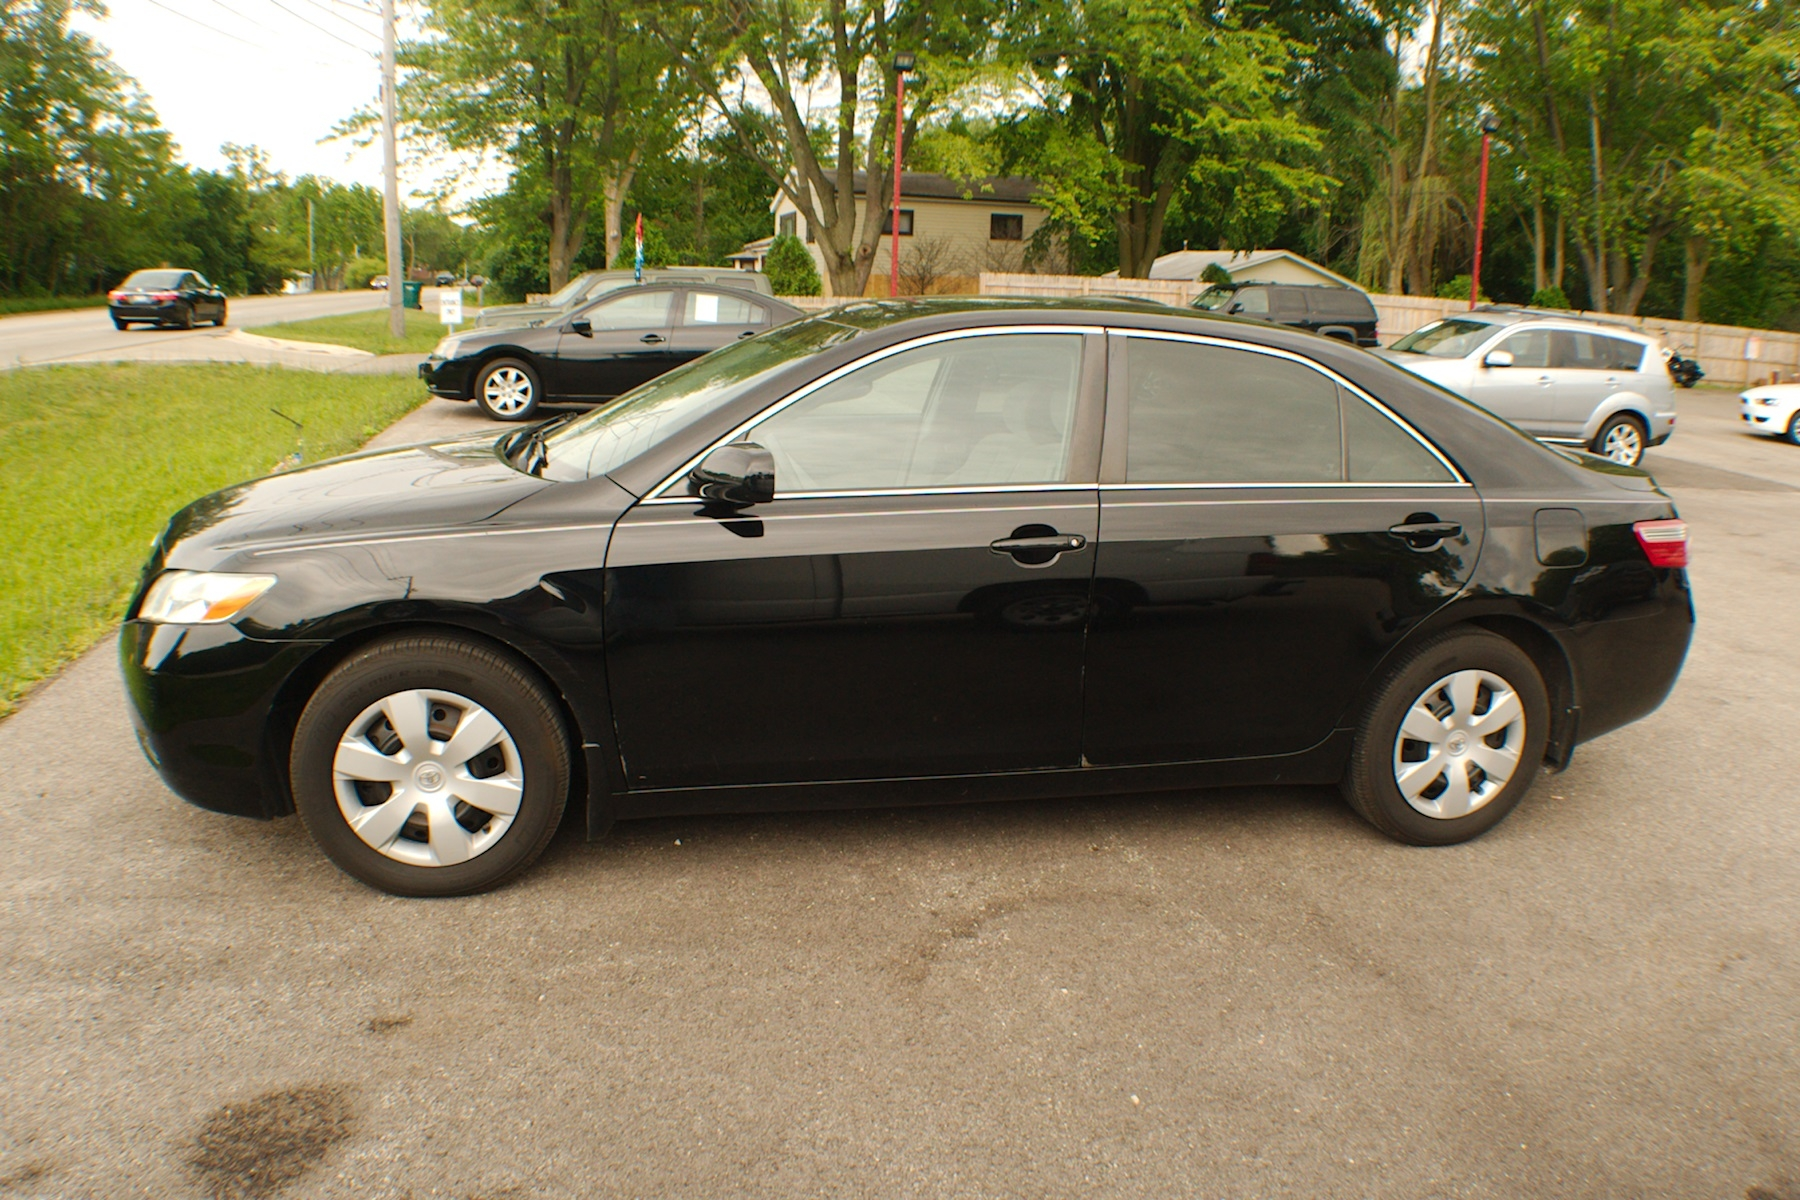 2007 Toyota Camry Black LE 4 Door Used Sedan sale Antioch Zion Waukegan Lake County Illinois